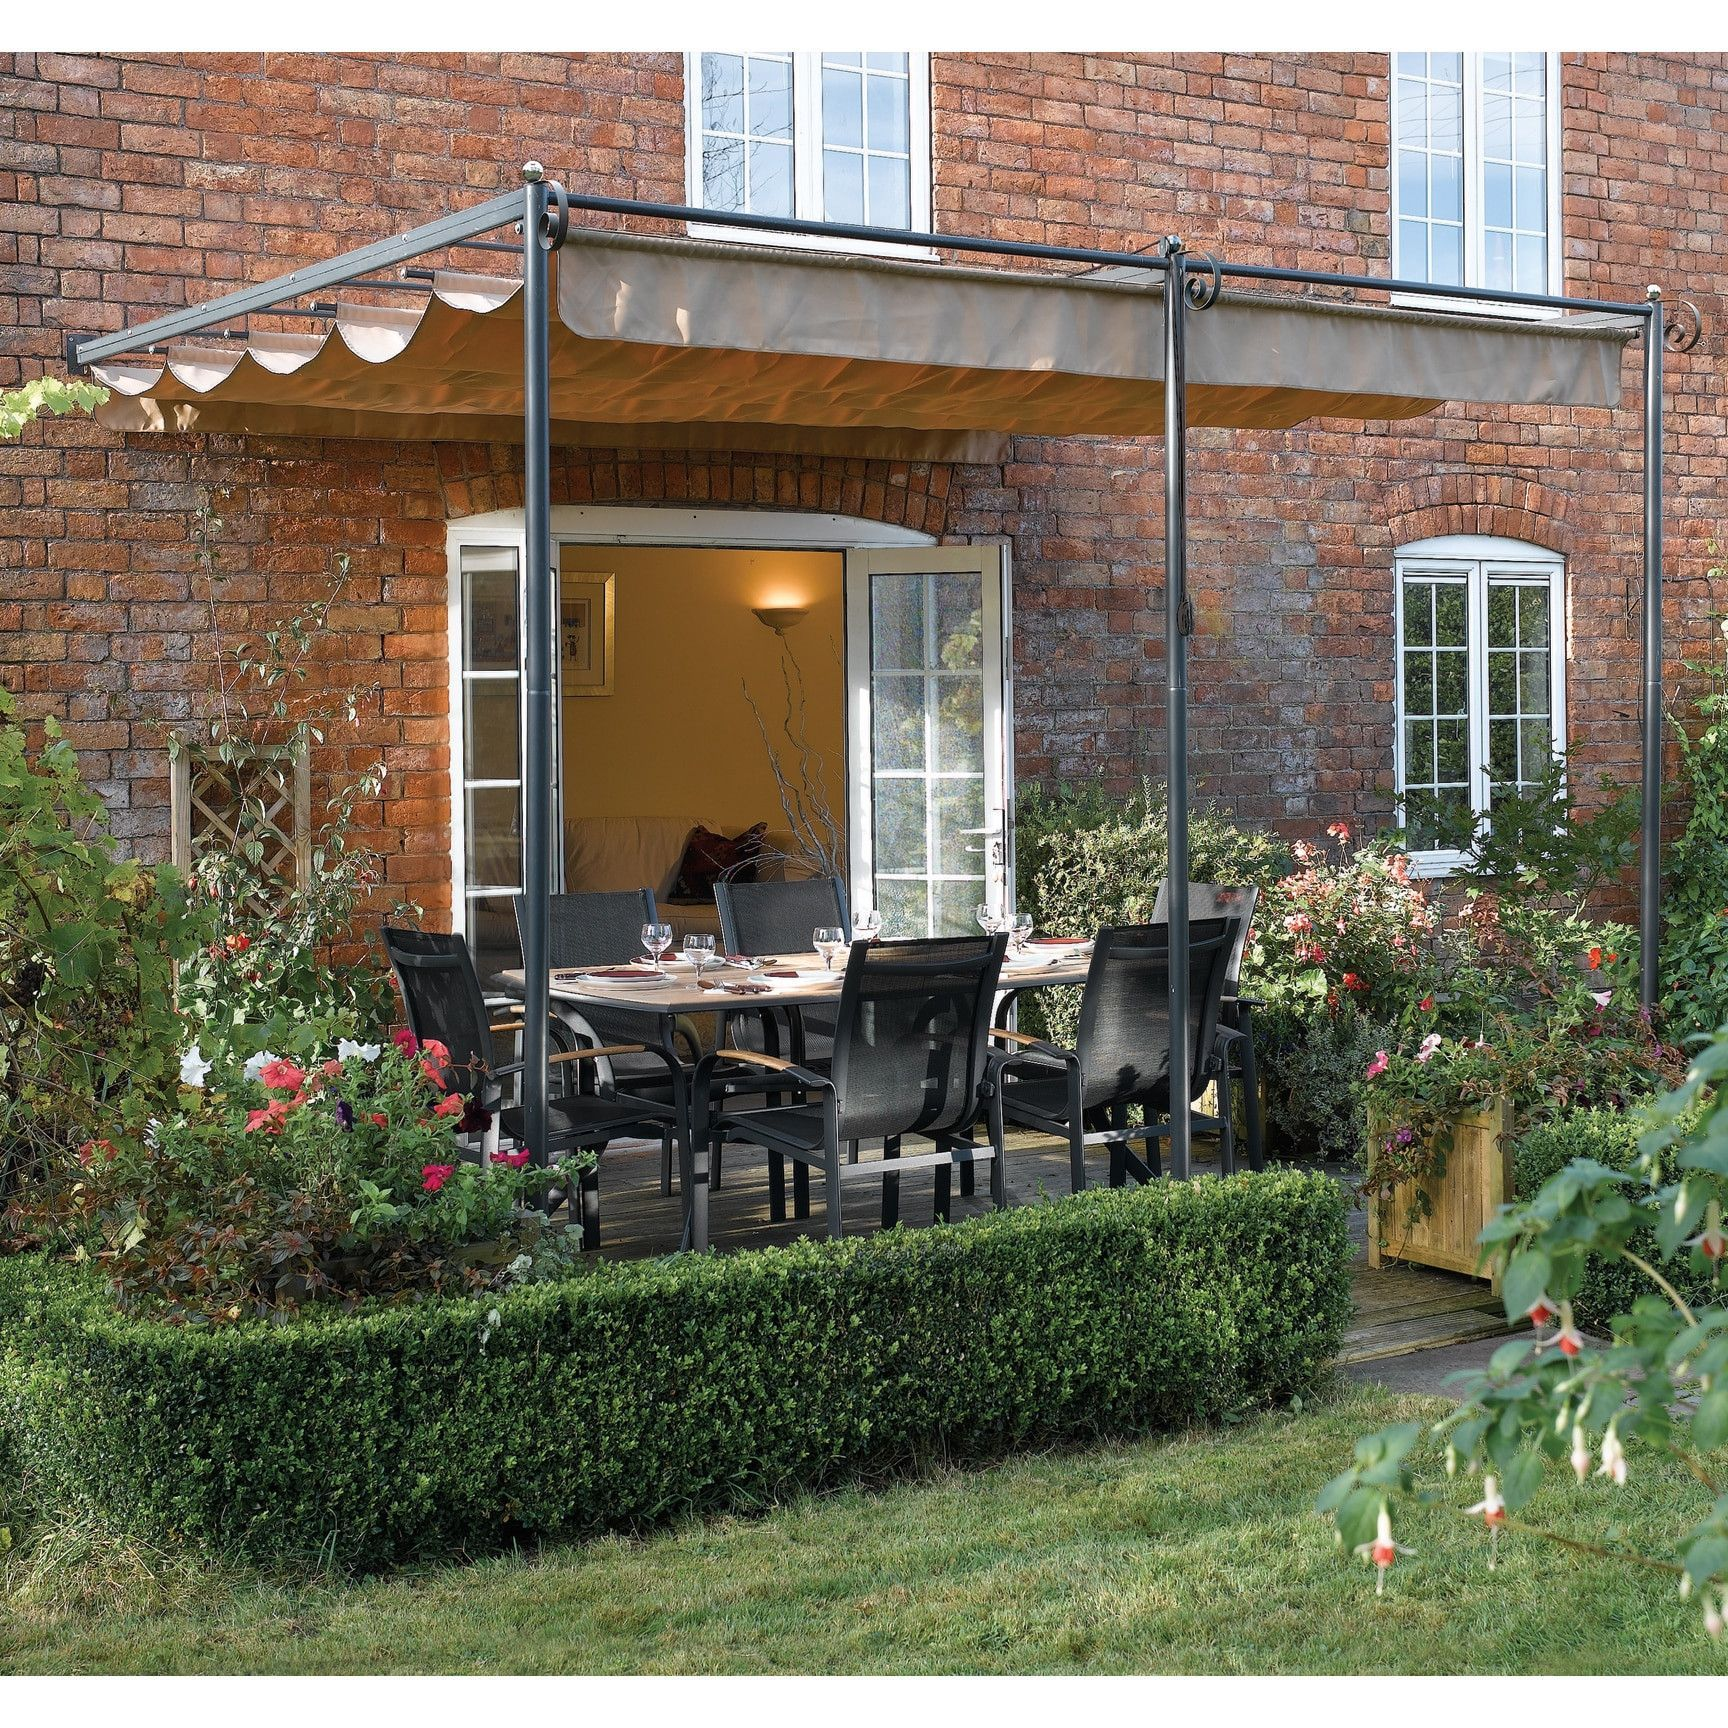 Garden Awnings for sale Patio awning canopies for house. & English Garden Steel Wall-mount Retractable Canopy | Products ...